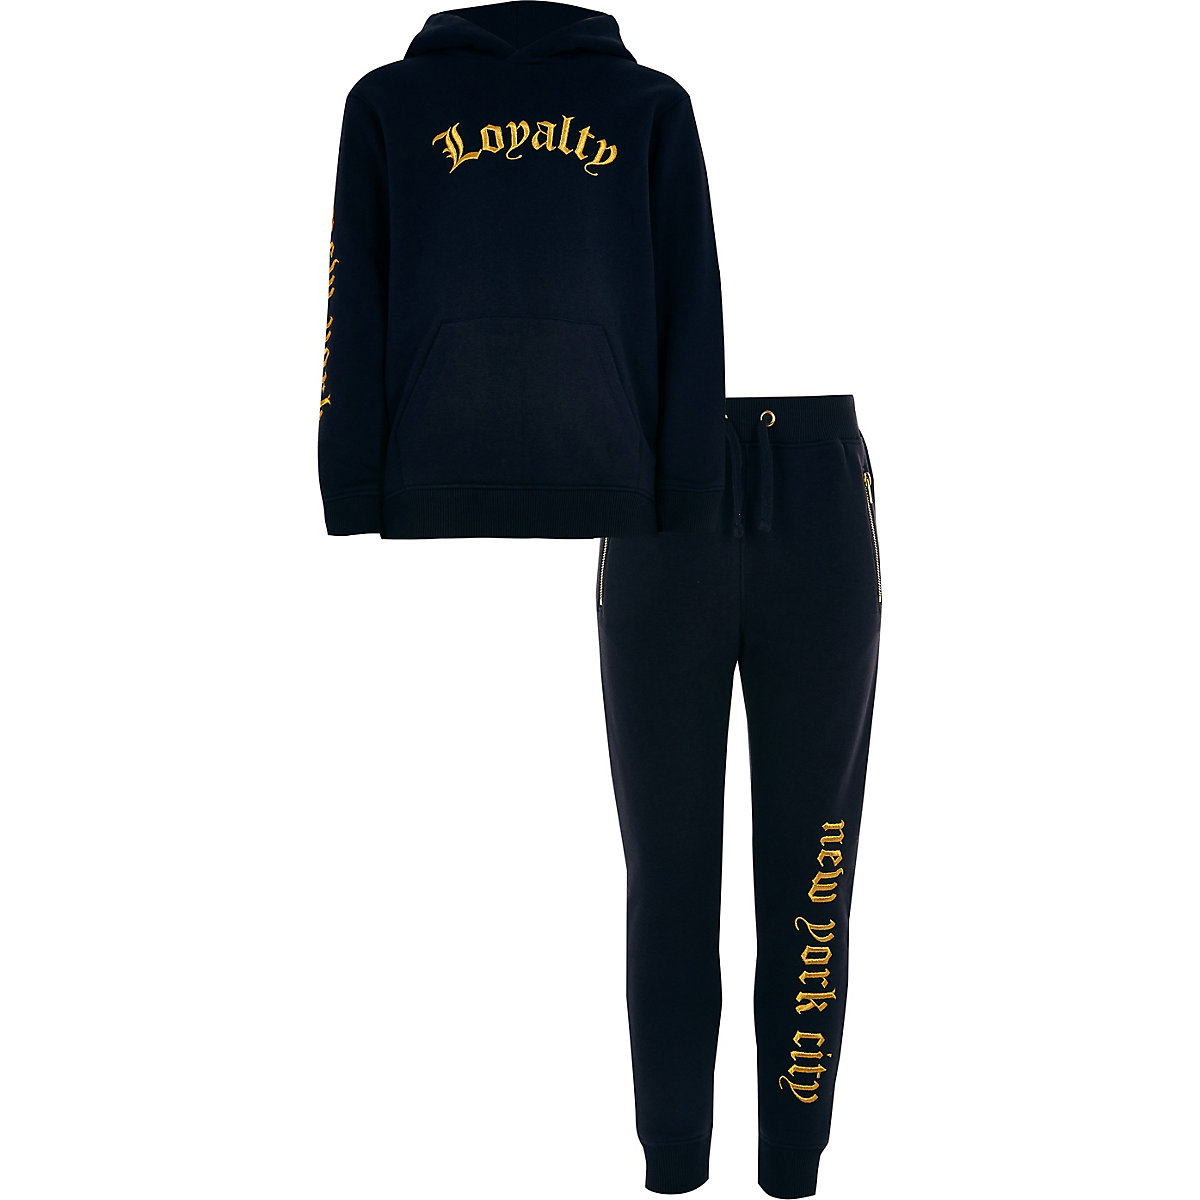 Boys navy 'Loyalty' hoodie outfit